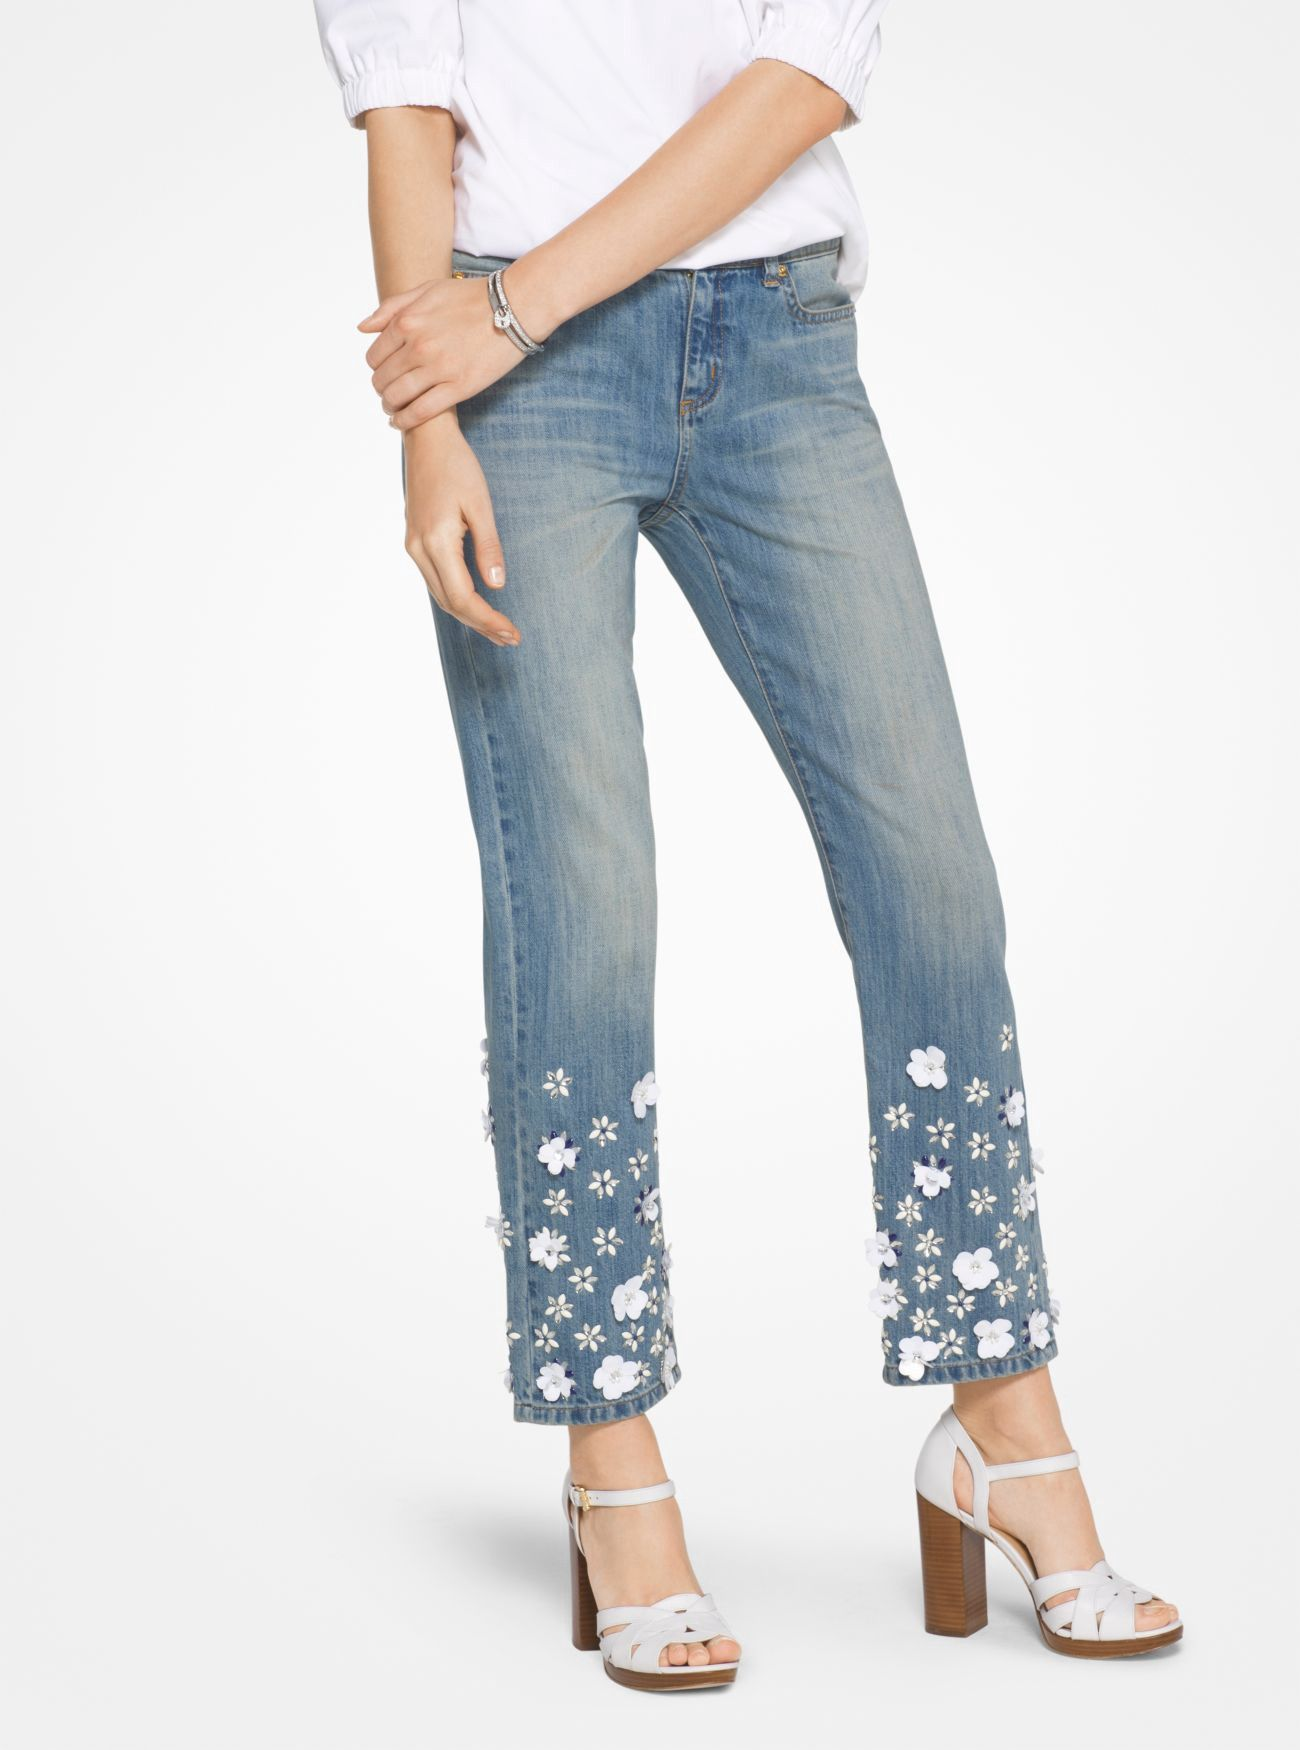 fc528f09aed8e MICHAEL KORS Floral Sequined Jeans. #michaelkors #cloth #all ...